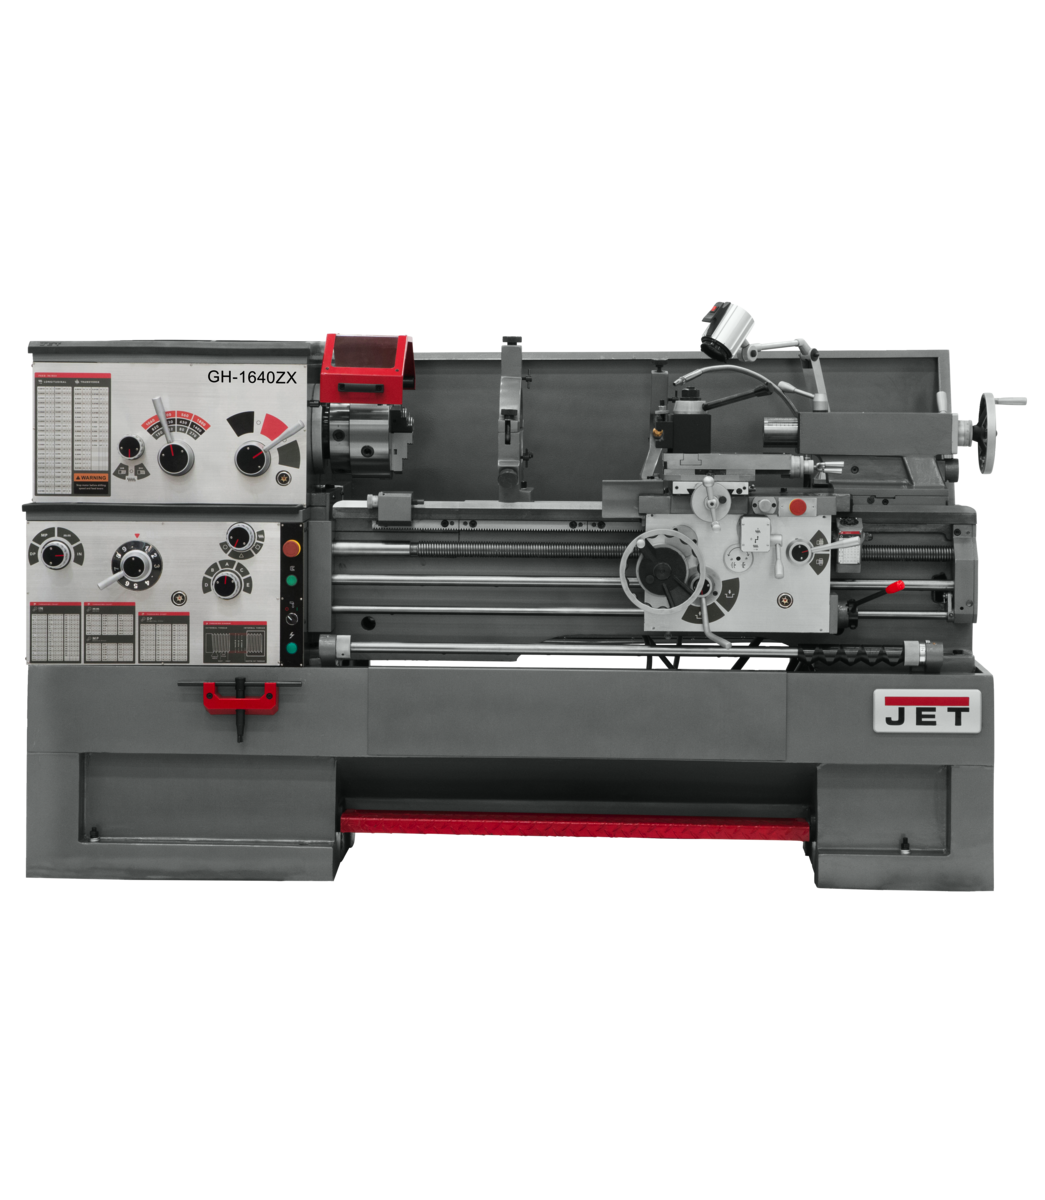 GH-1640ZX Lathe With 3-Axis Acu-Rite 203 DRO